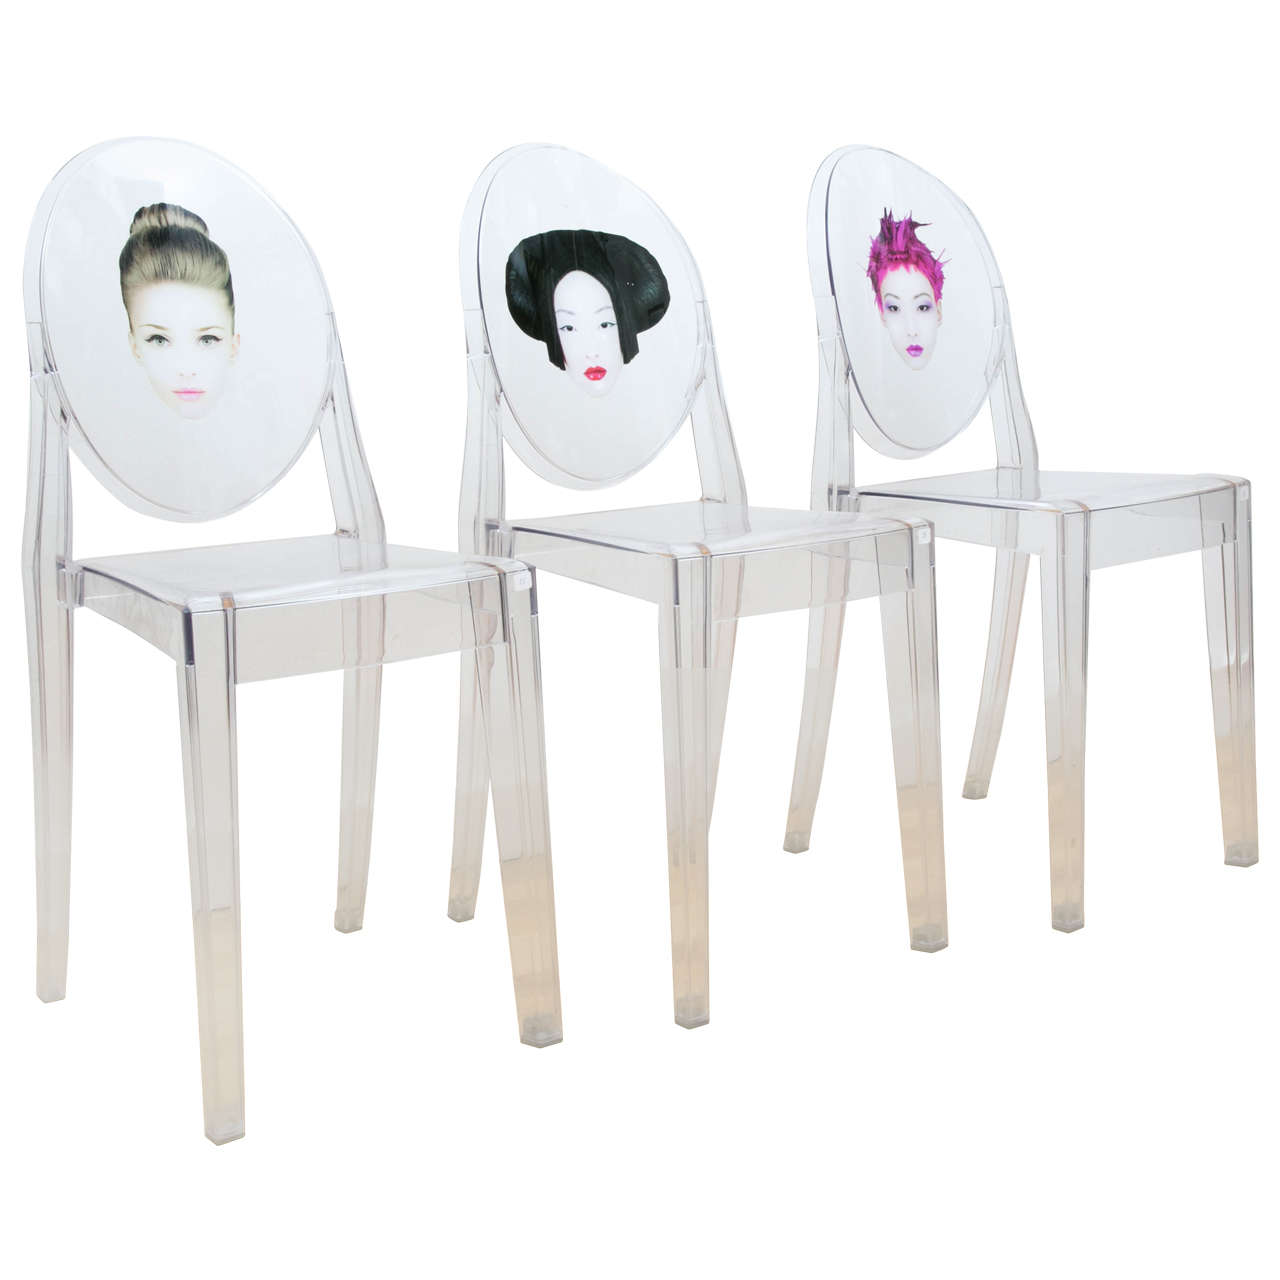 victoria ghost chair swinging outdoor plans set of three chairs exclusively designed by philippe starck for sale